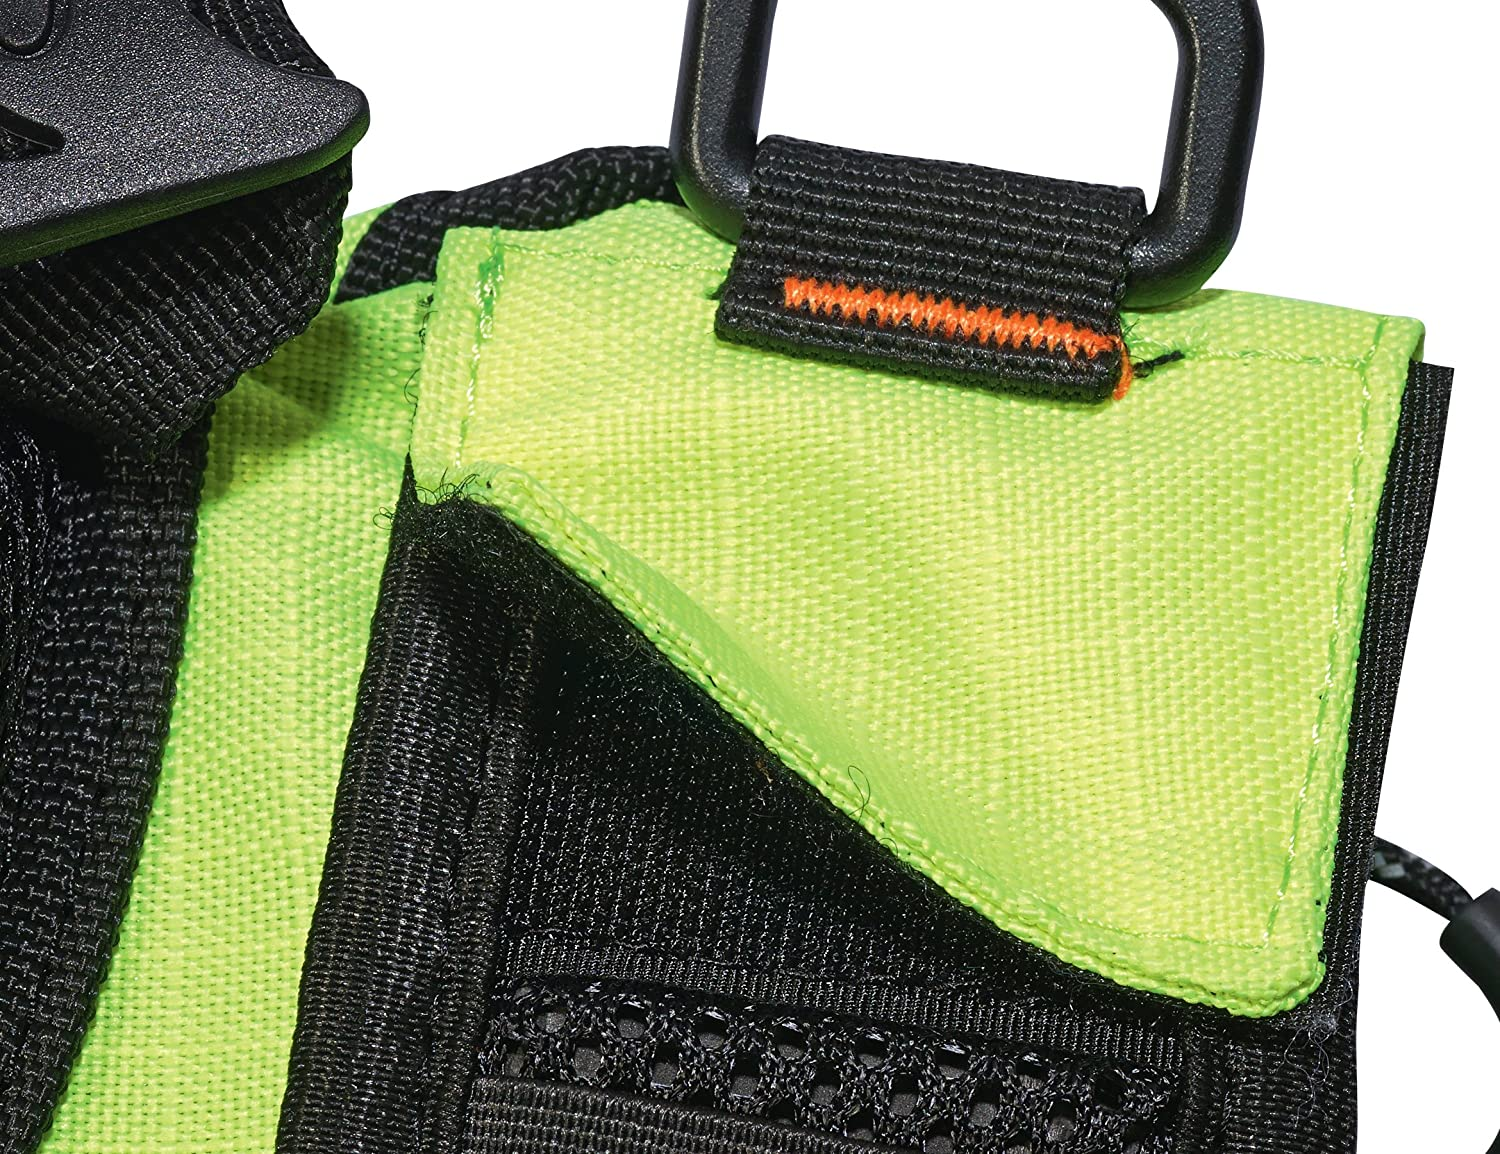 Amazon.com: Ergodyne Chill-Its 5156 Premium High Visibility Low Profile Hydration Pack, Lime: Home Improvement